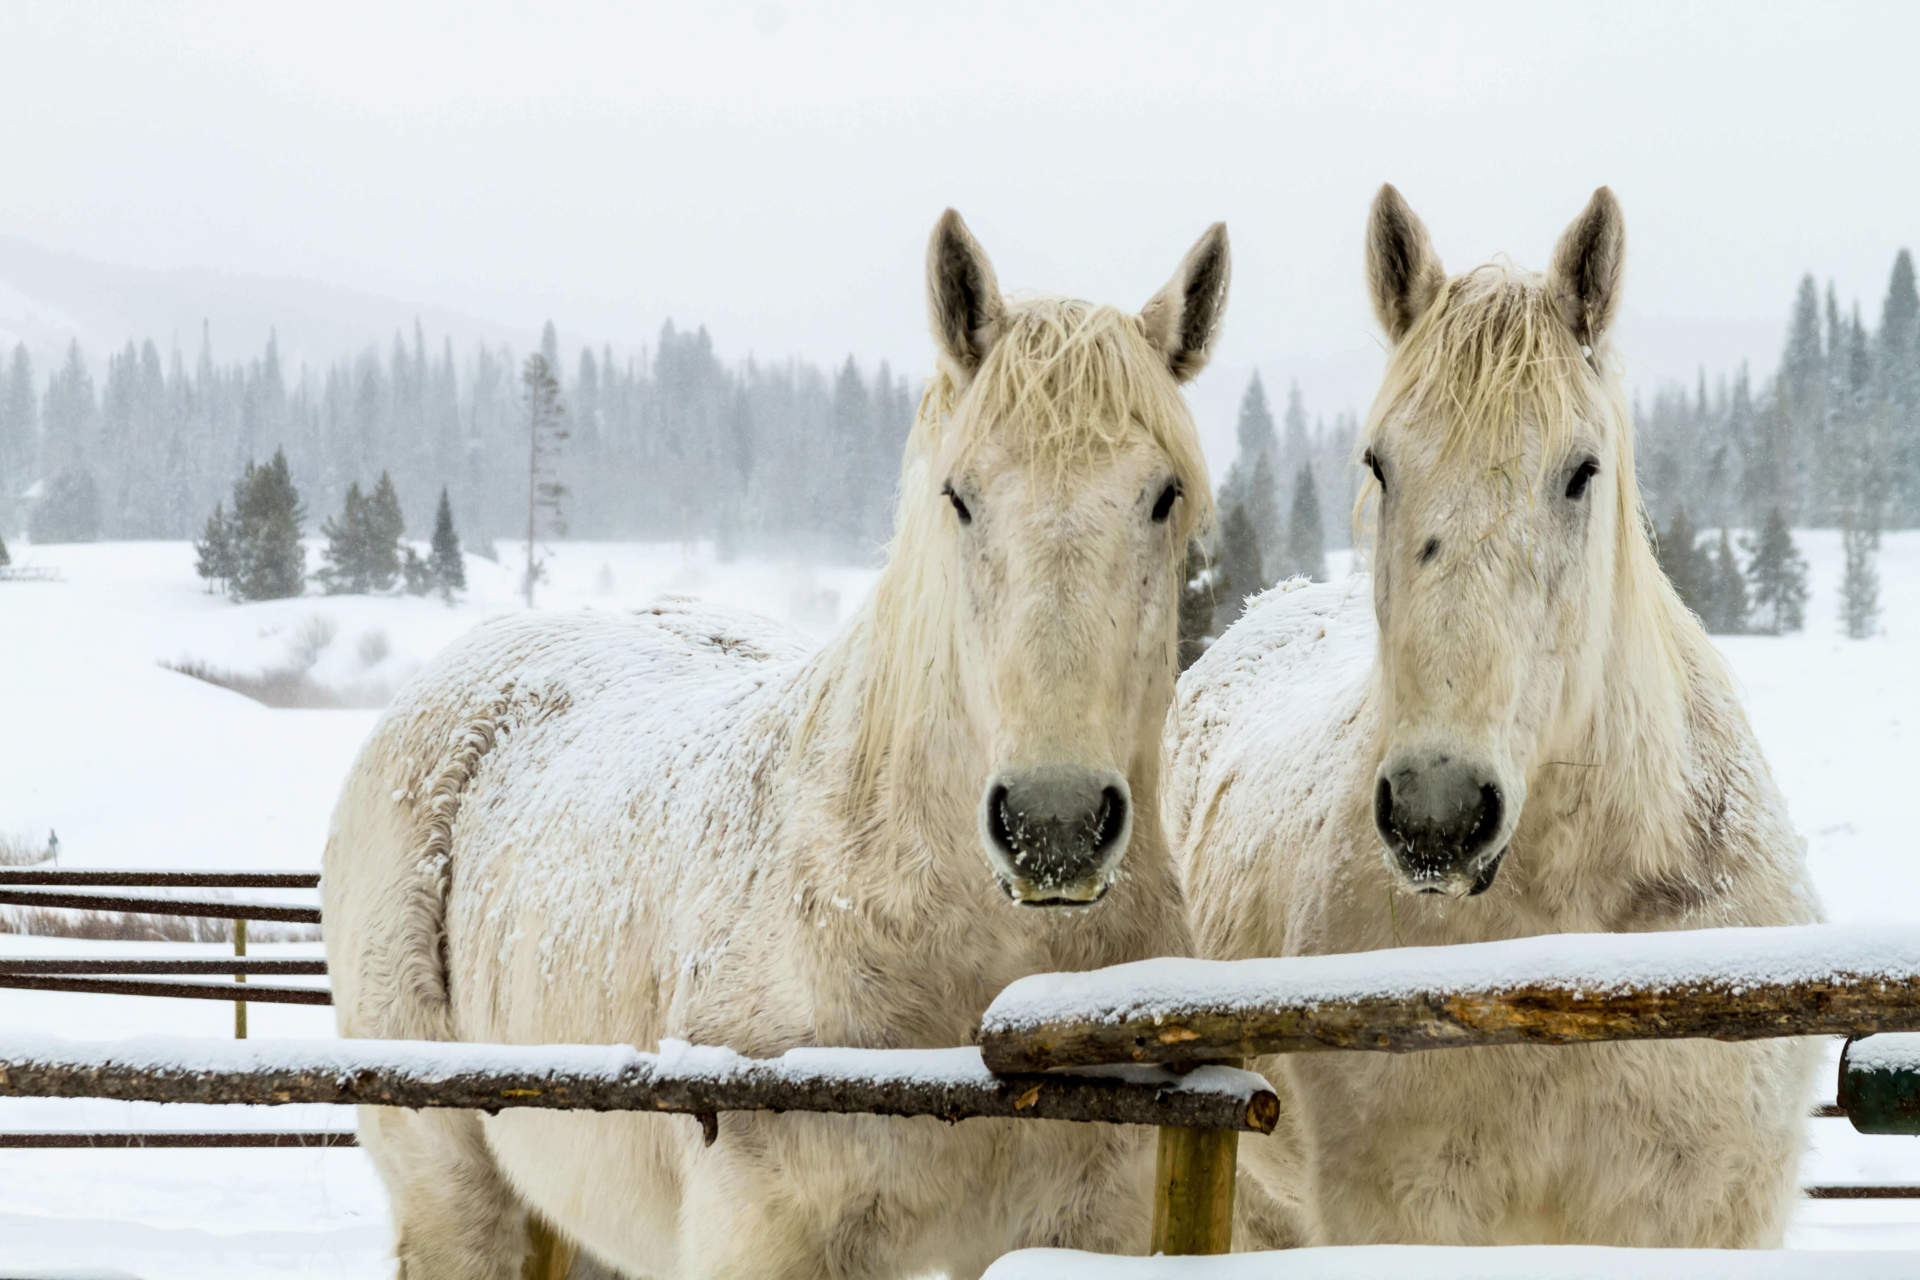 Two White Horse in the Snow